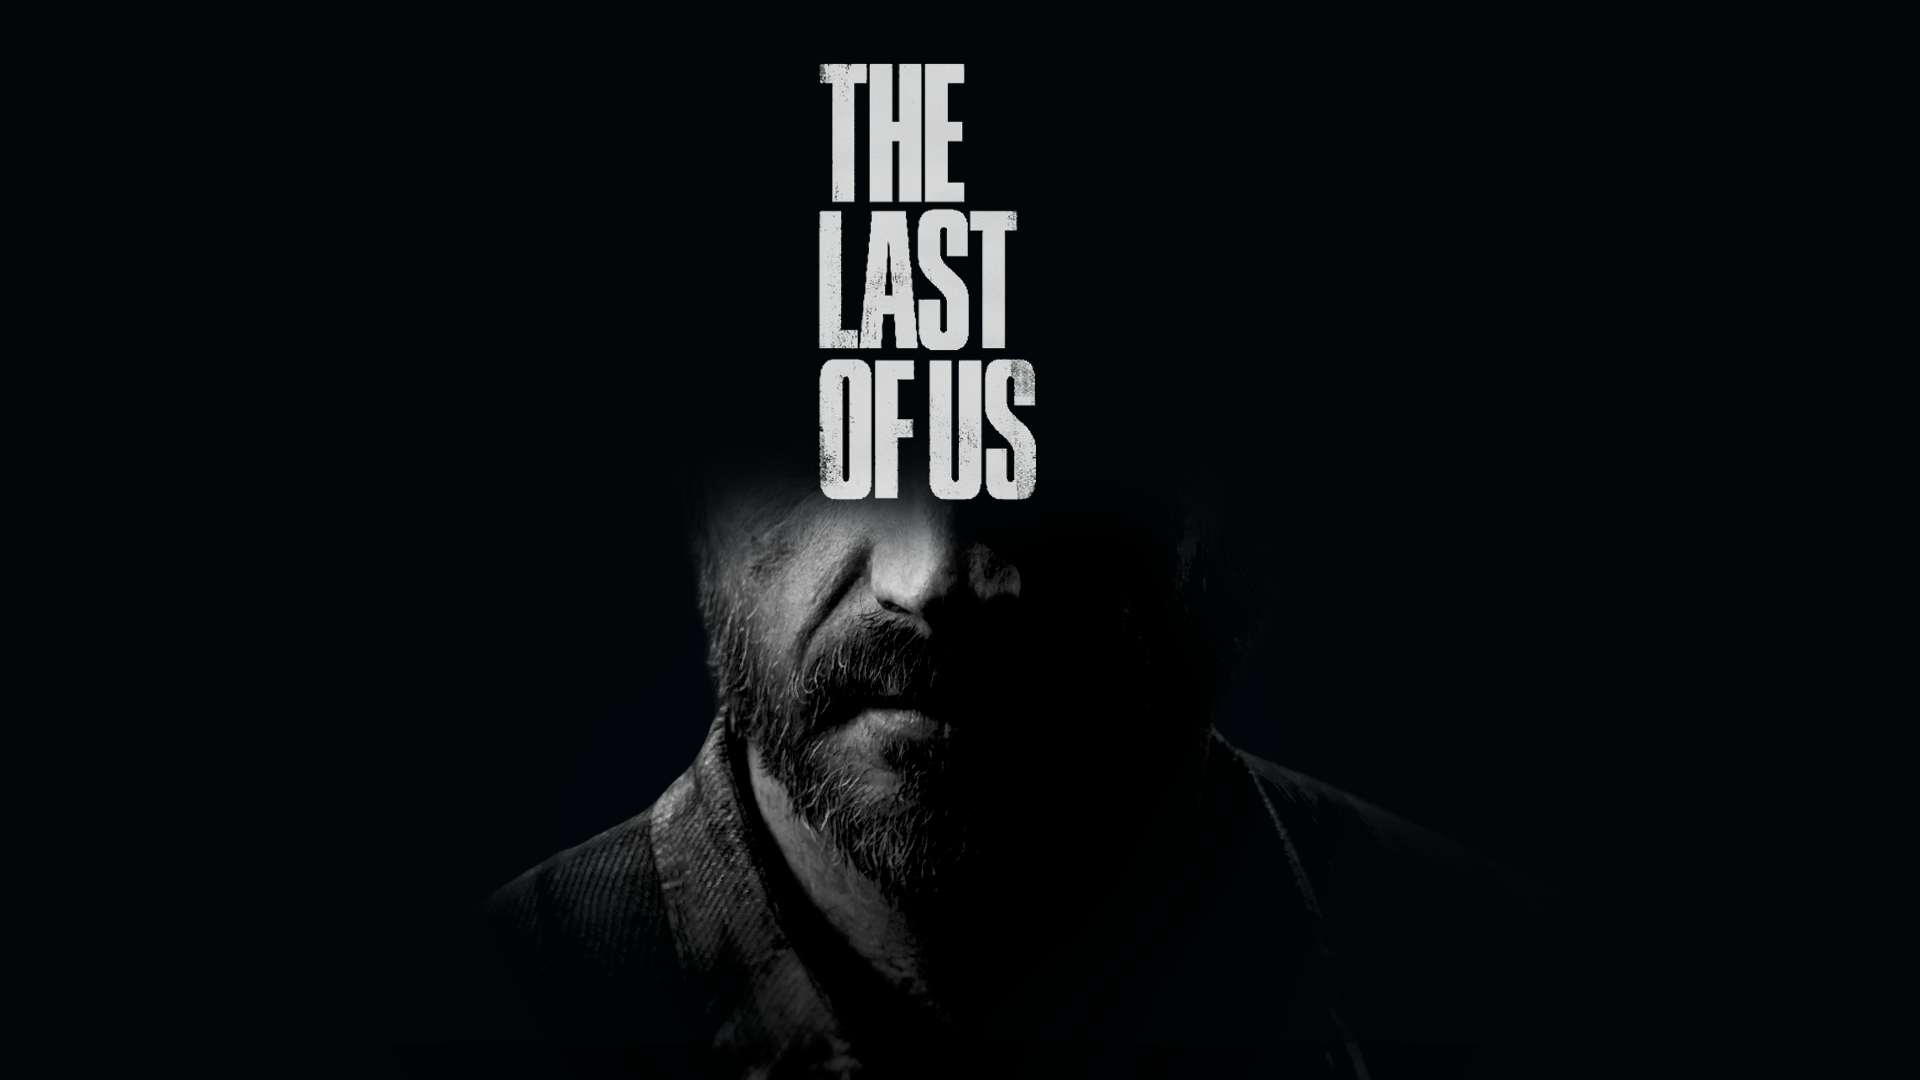 320x568 Joel The Last Of Us 320x568 Resolution Hd 4k